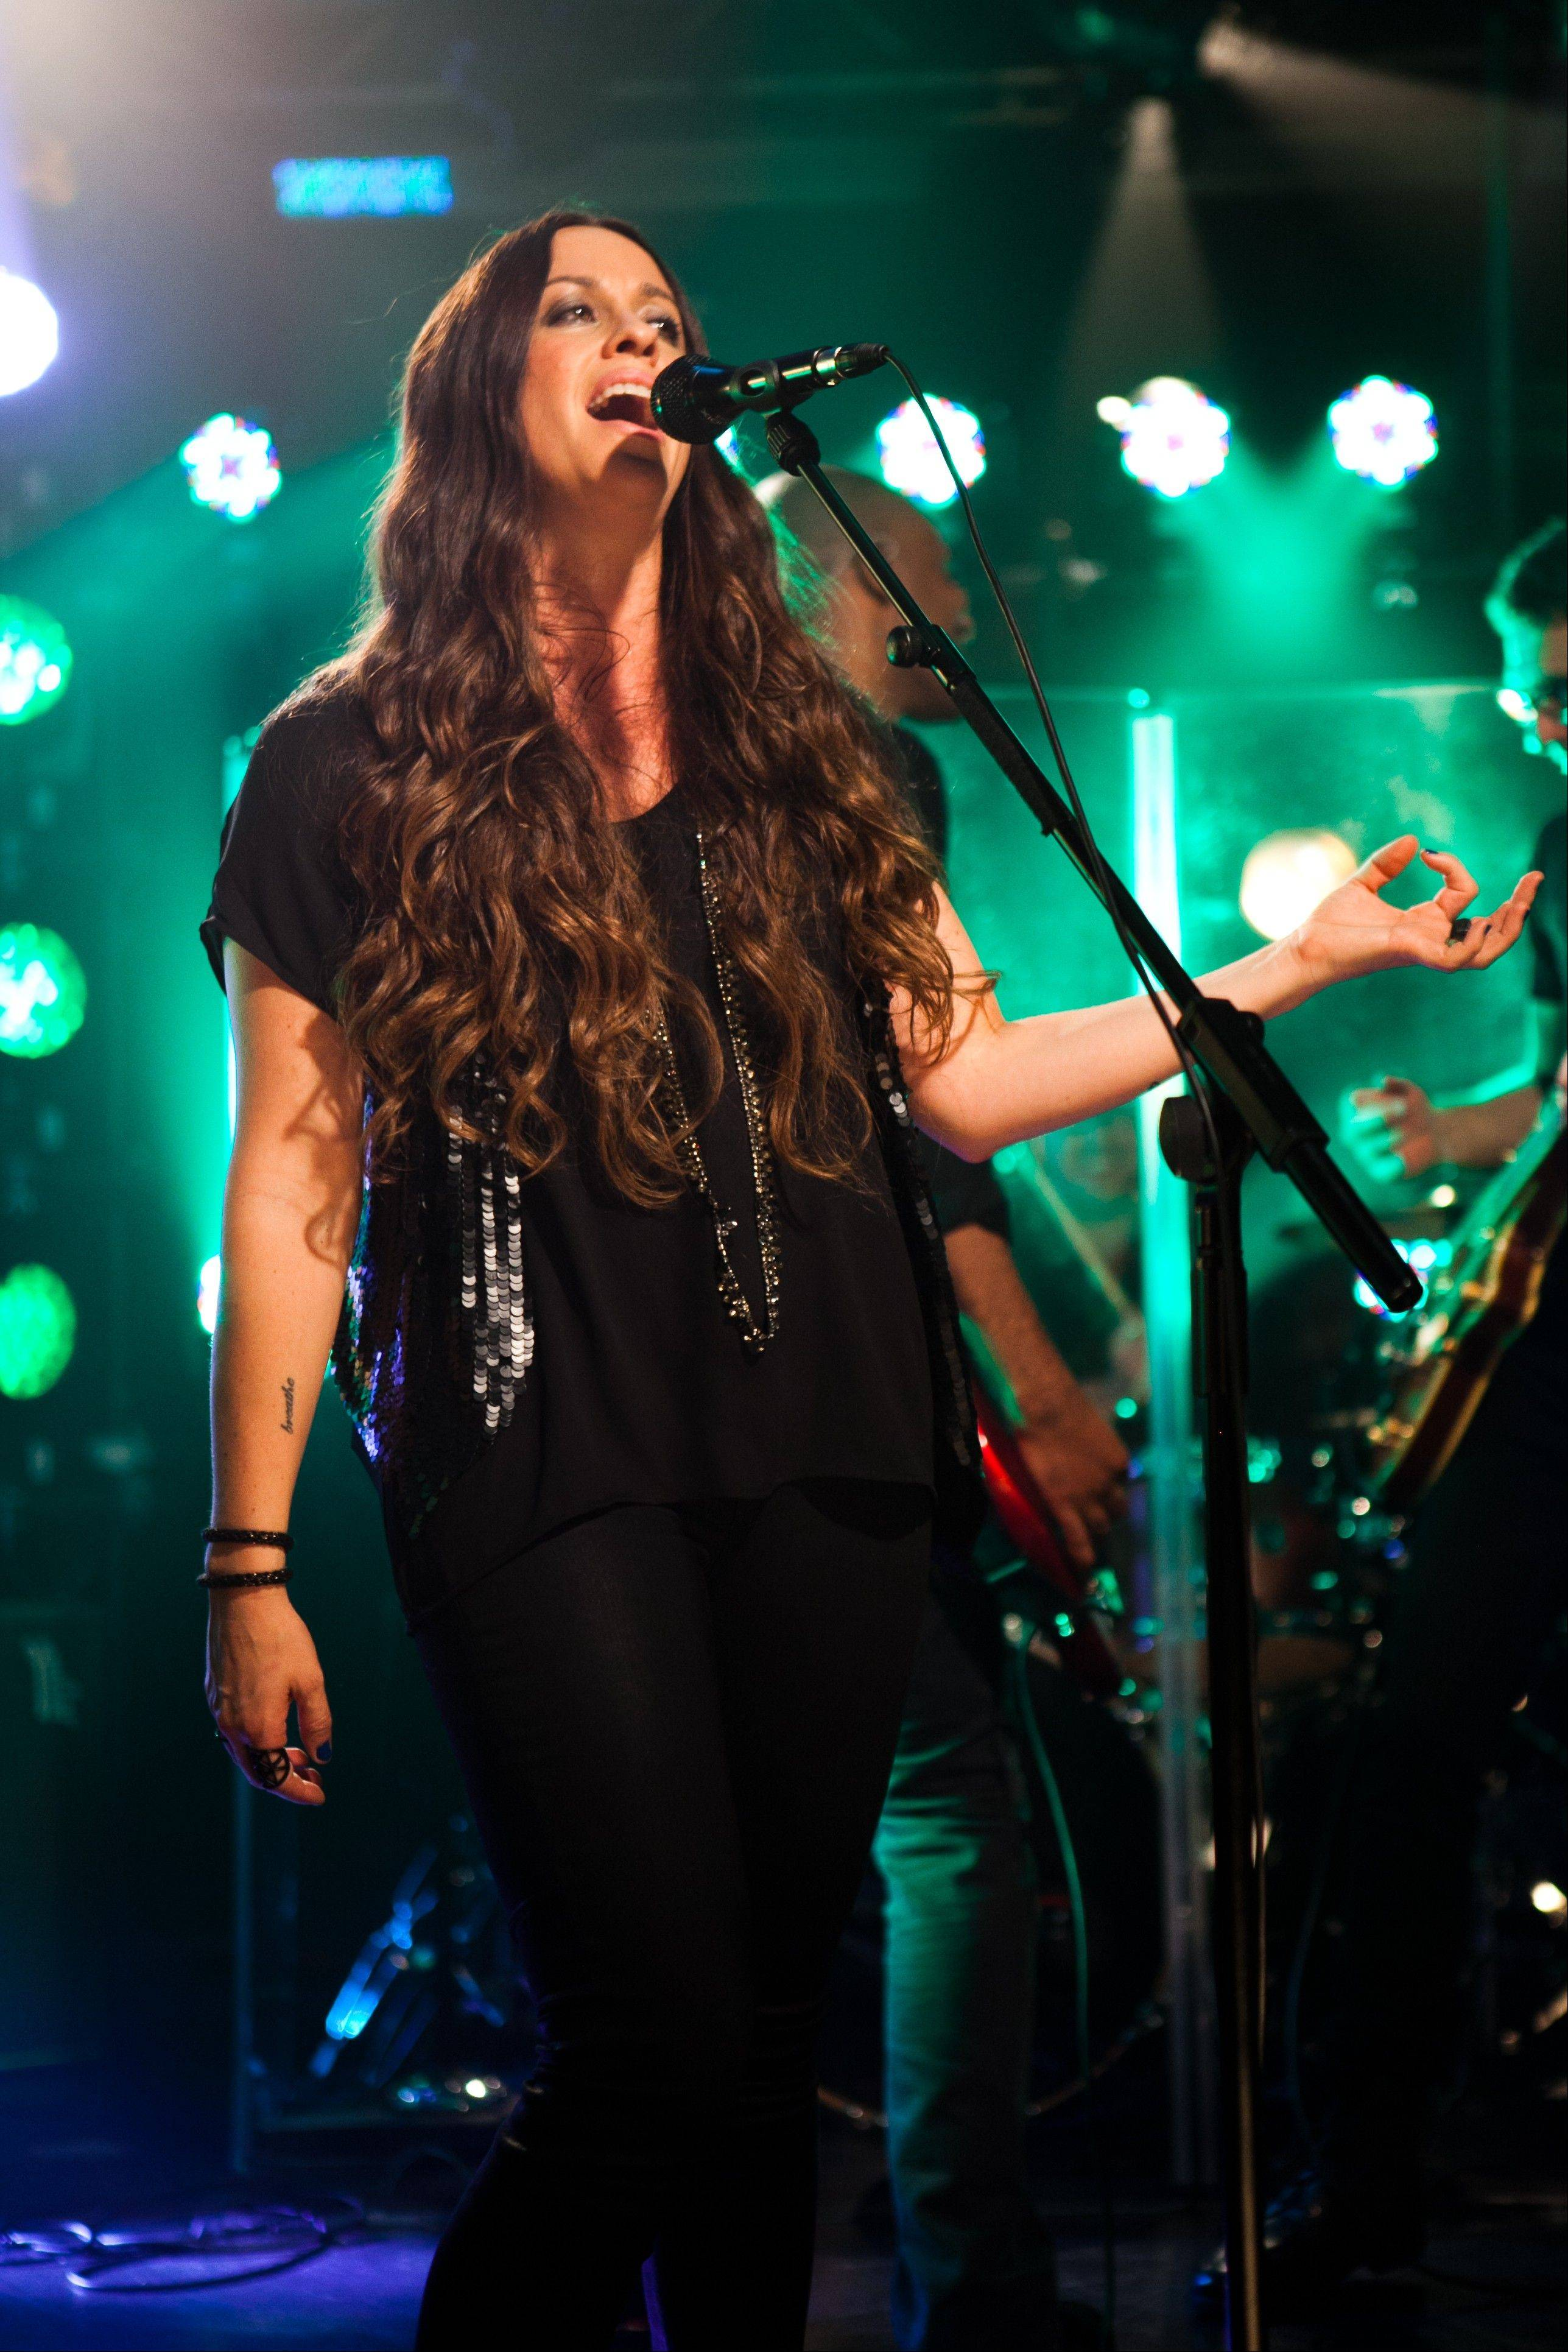 Alanis Morissette headlines Chicago's Riviera Theatre on Saturday, Oct. 13.